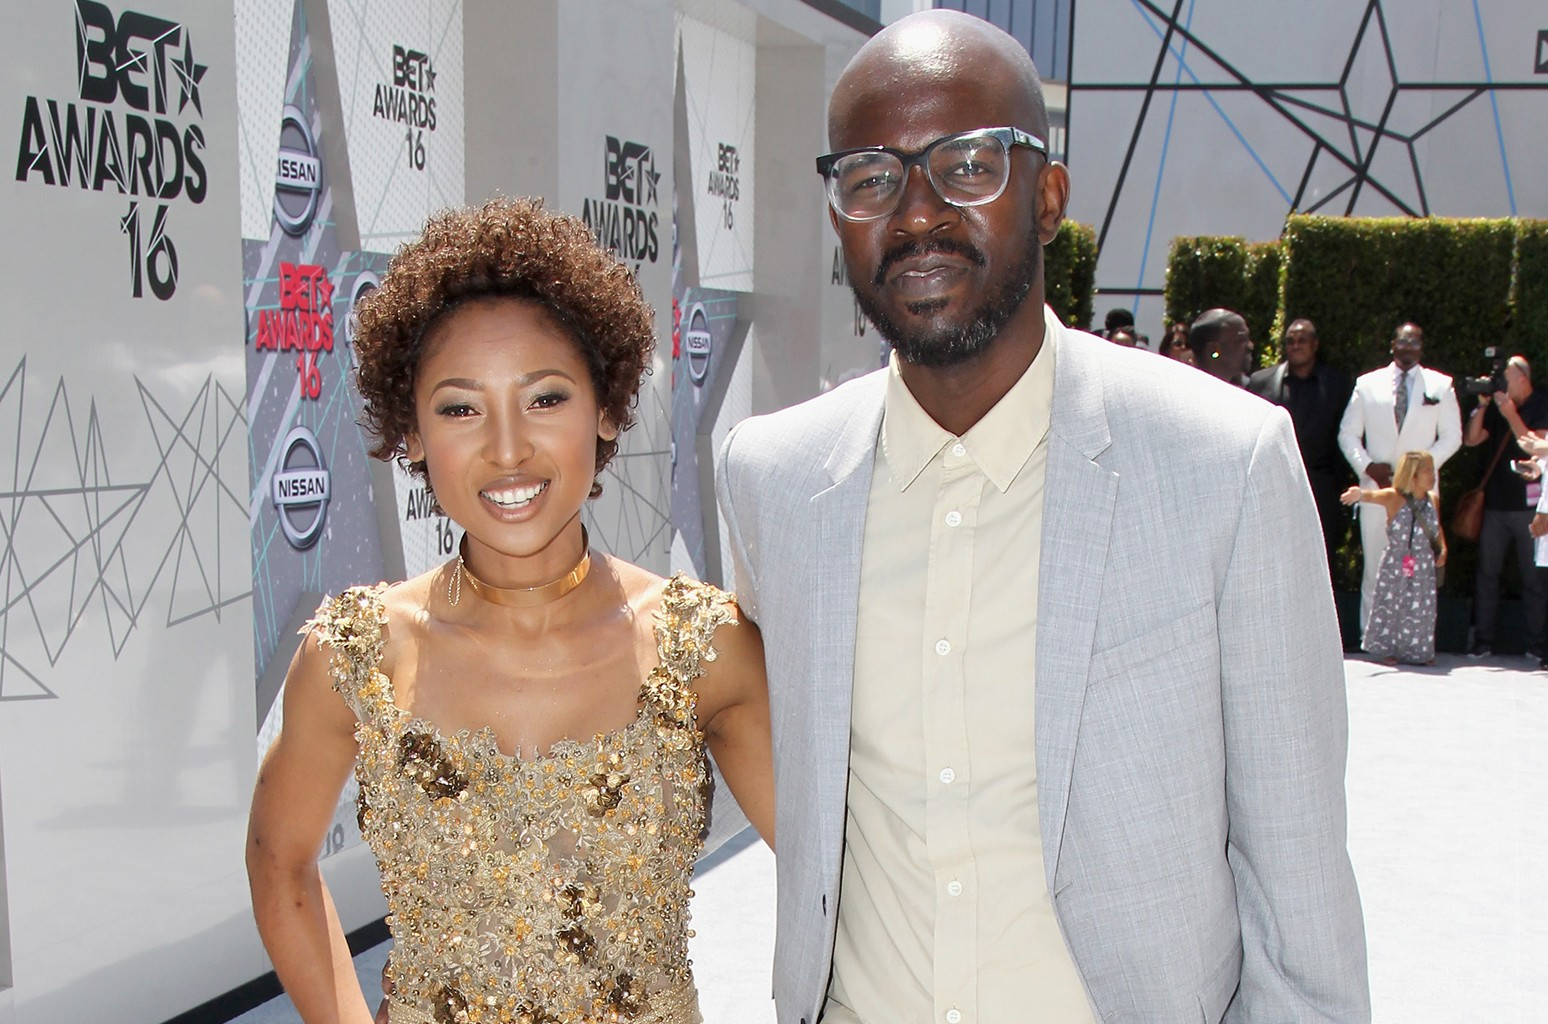 DJ Black Coffee at the 2016 BET Awards